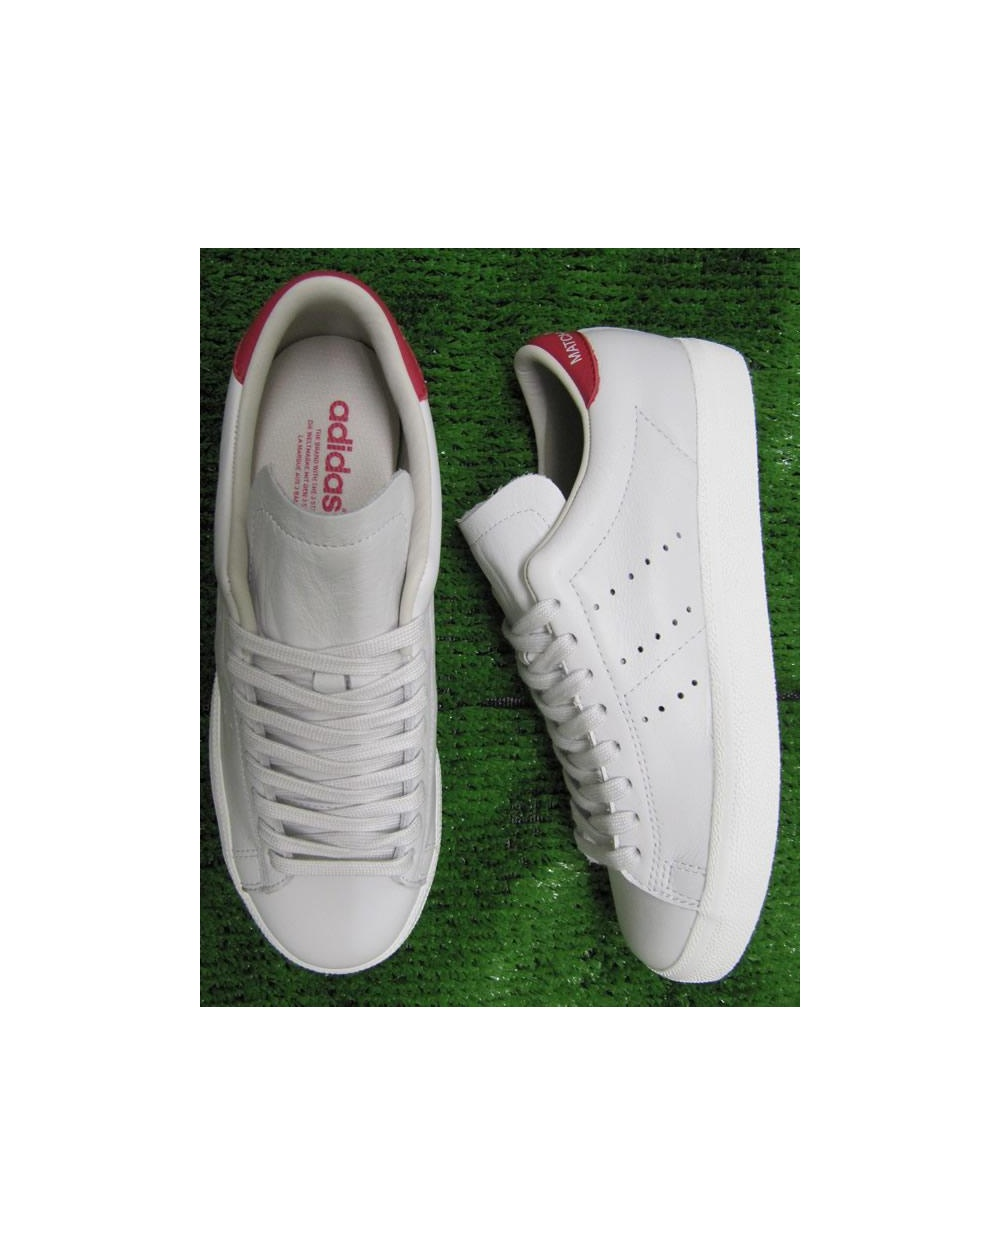 Neo White Navy Red Adidas: Adidas Match Play Trainers Neo White/red, Originals